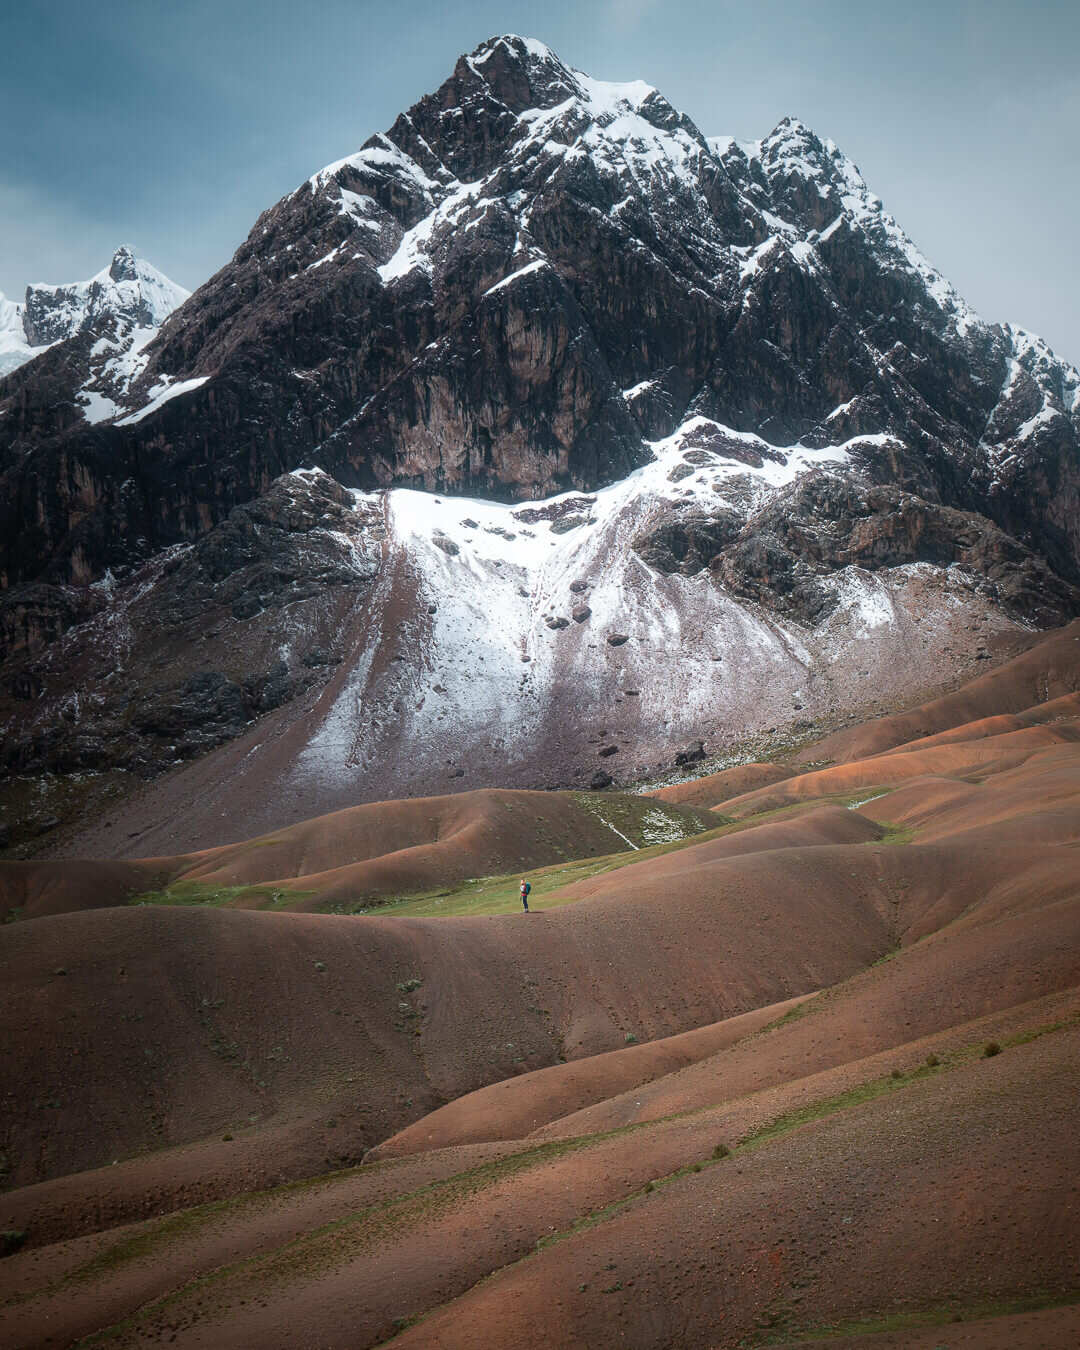 Mountain views on the second day of the Ausangate Trek in Peru.